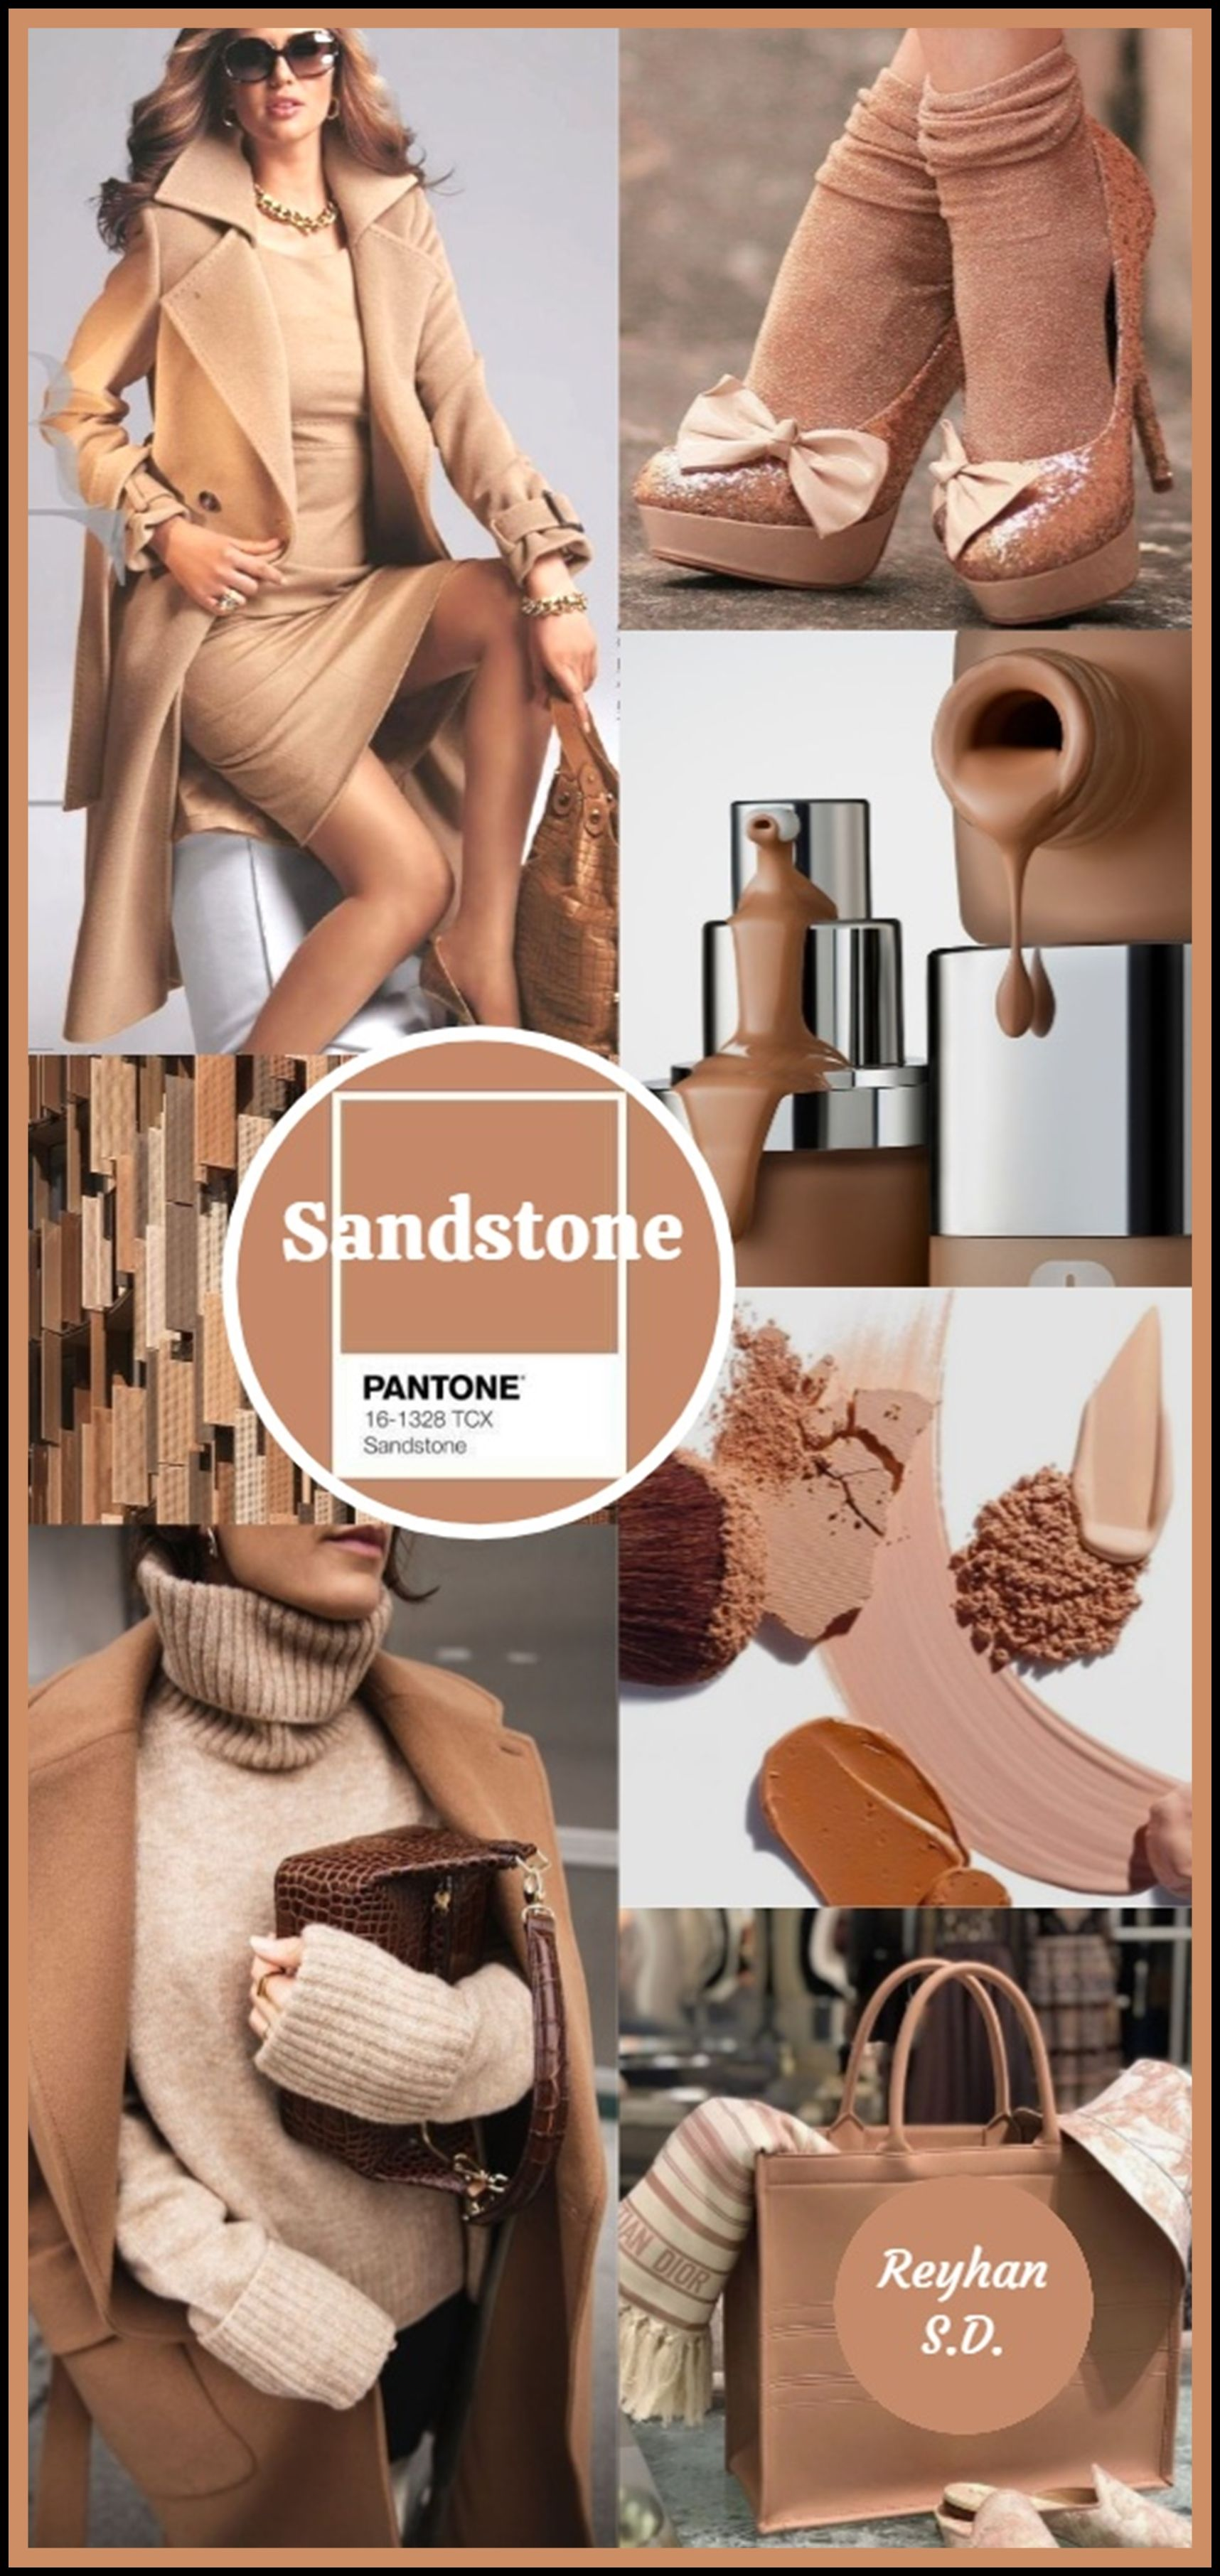 Sandstone Pantone Aw 2020 2021 Nyfw Color By Reyhan S D In 2020 Color Trends Fashion Pantone Color Fashion Colorful Fashion